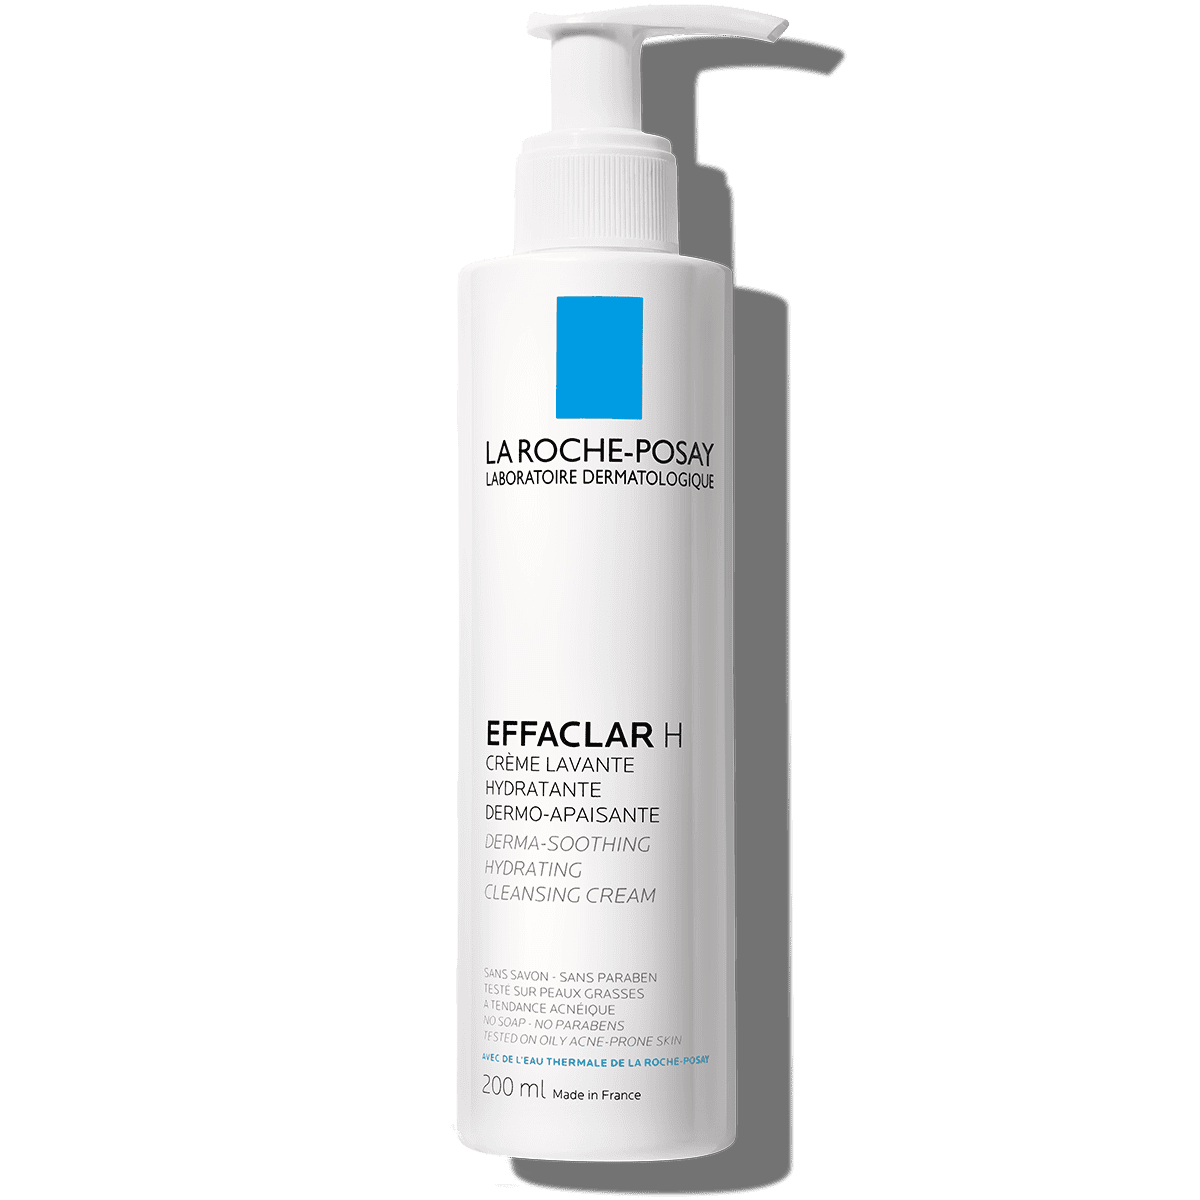 La Roche Posay Face Cleanser Effaclar H Cleansing Cream 200ml 33378753